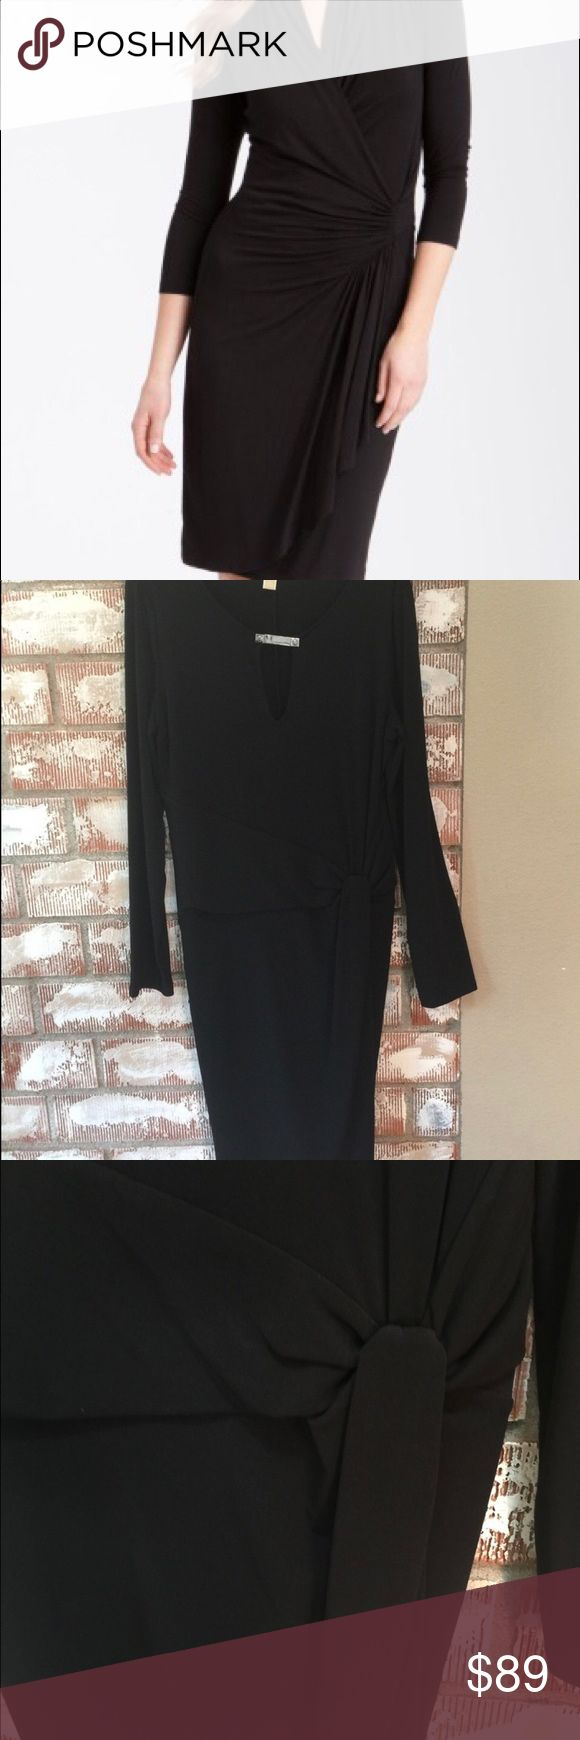 ♠️Michael Kors♠️ Little black dress! ♠️Michael Kors♠️ Little black dress! Perfect for the holidays, office, evening out! Pair with sparkly clutch for holiday party or for the office add pumps! ENJOY!!💋 Michael Kors Dresses